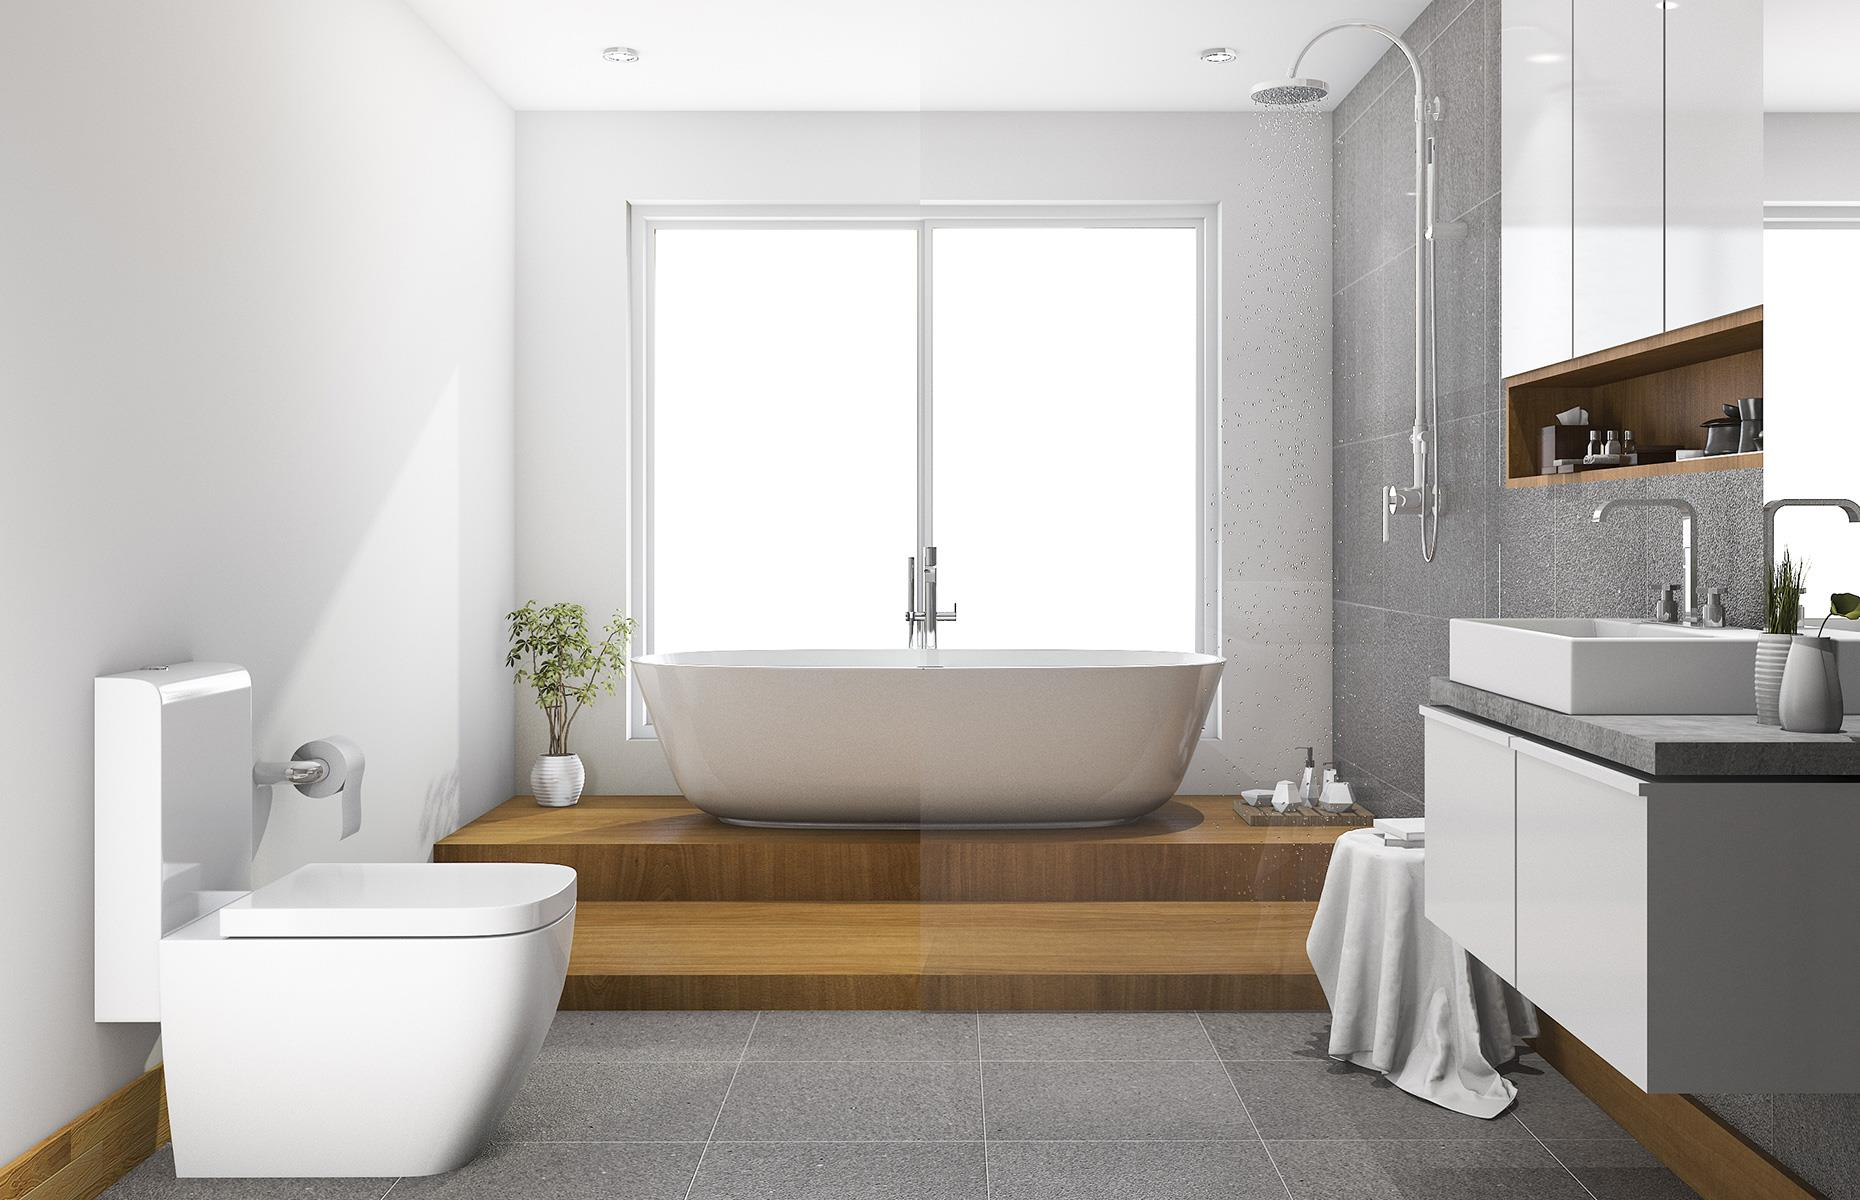 30 white bathroom ideas that are far from boring | loveproperty.com